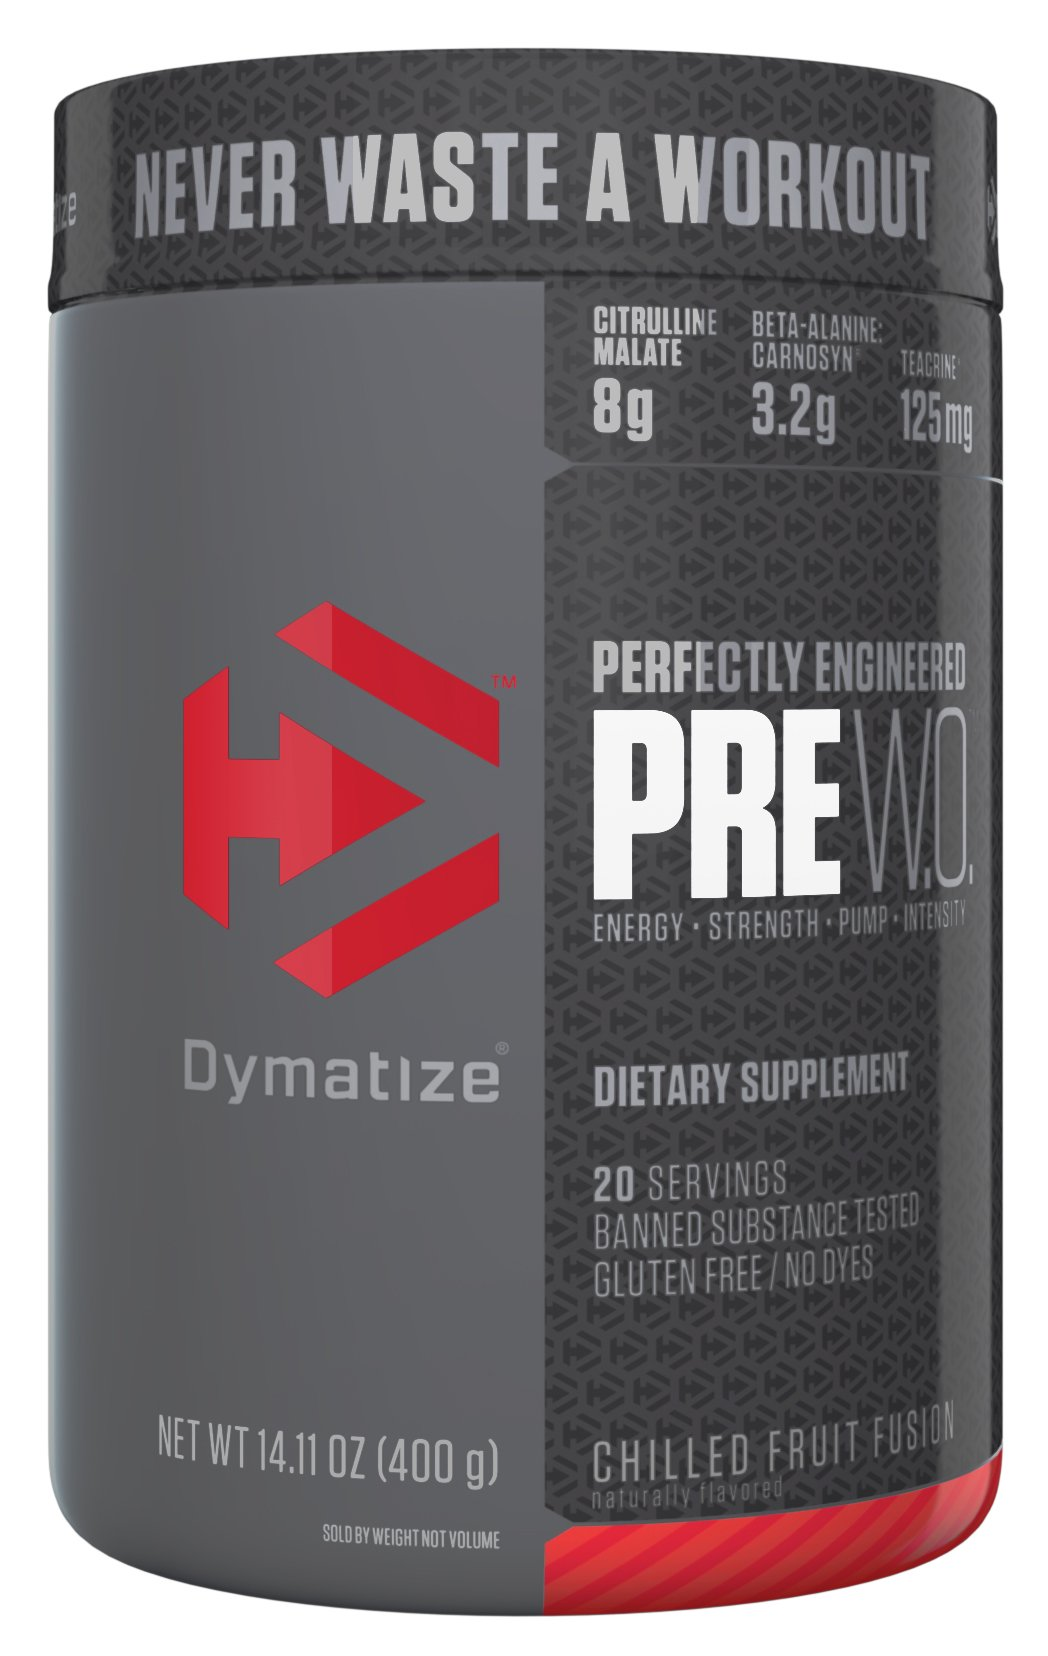 Dymatize Pre Workout Supplement Powder, Maximize Energy & Strength, Chilled Fruit Fusion, 400 Gram by Dymatize